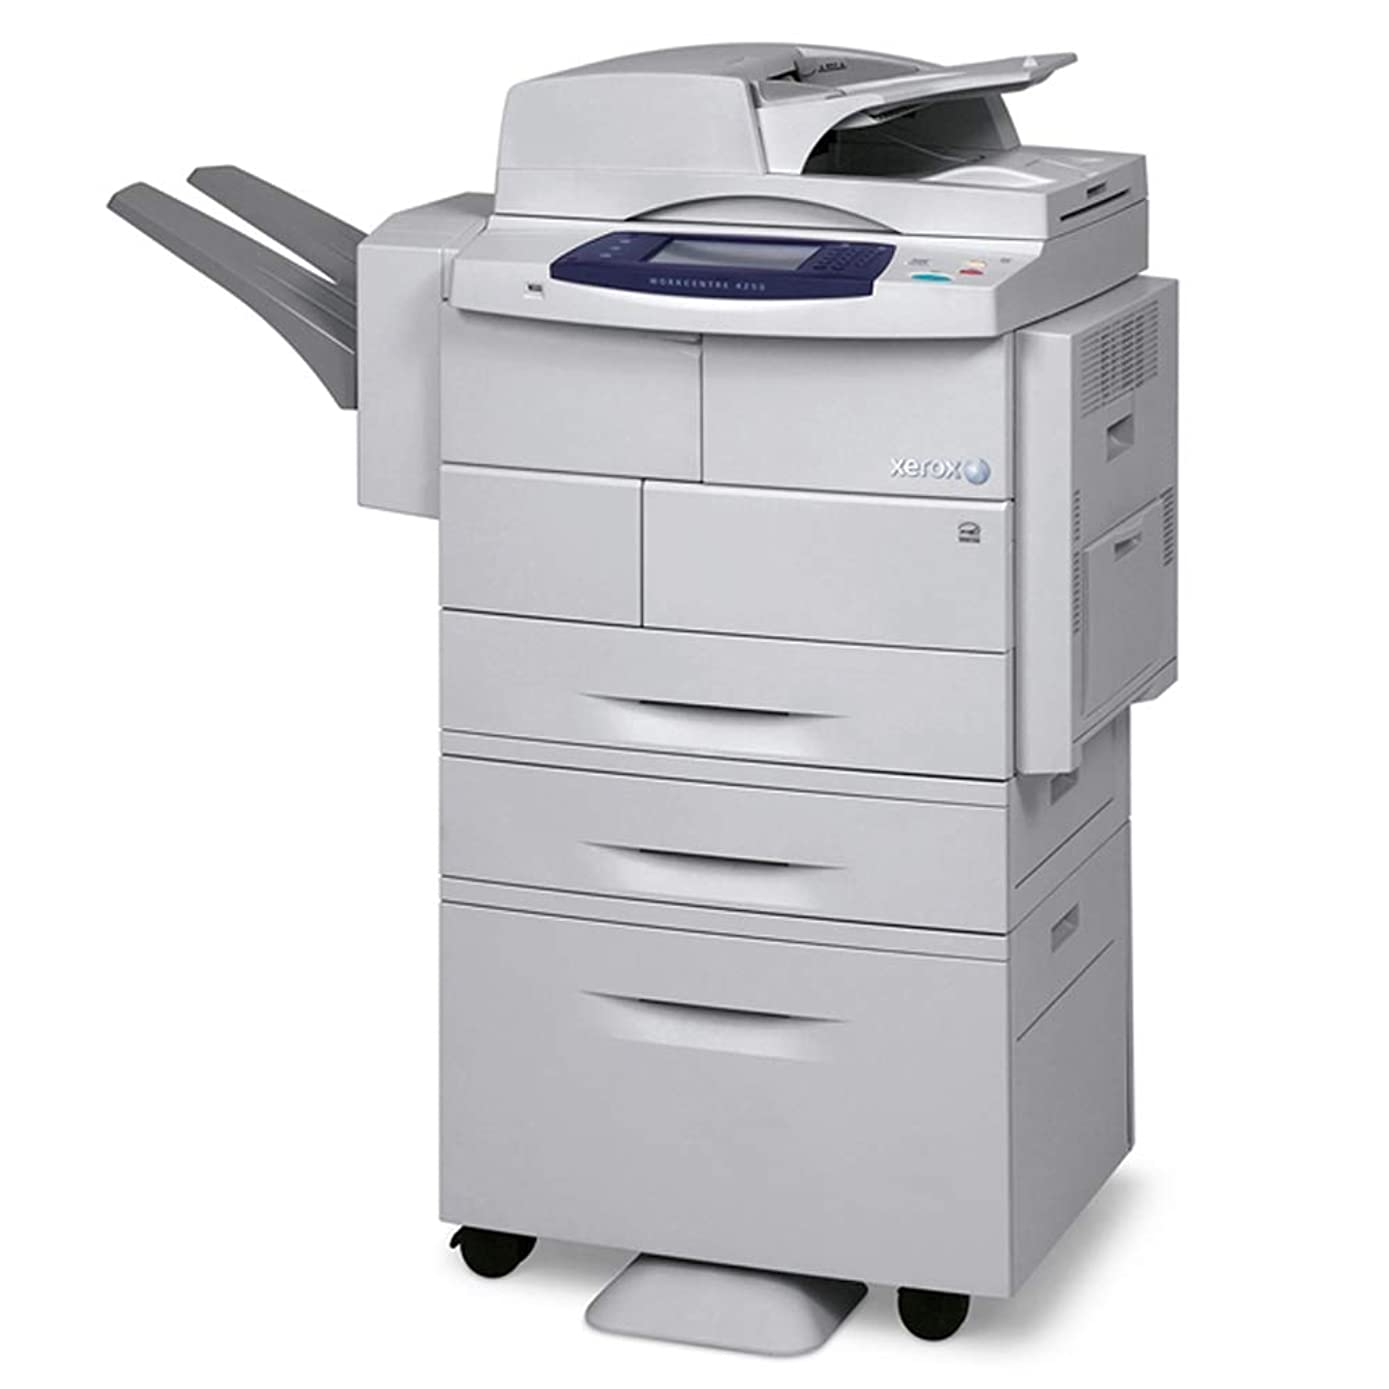 Used Xerox WorkCentre 4250XF Mono MFP Printer Copier Scanner with Finisher 45 PPM